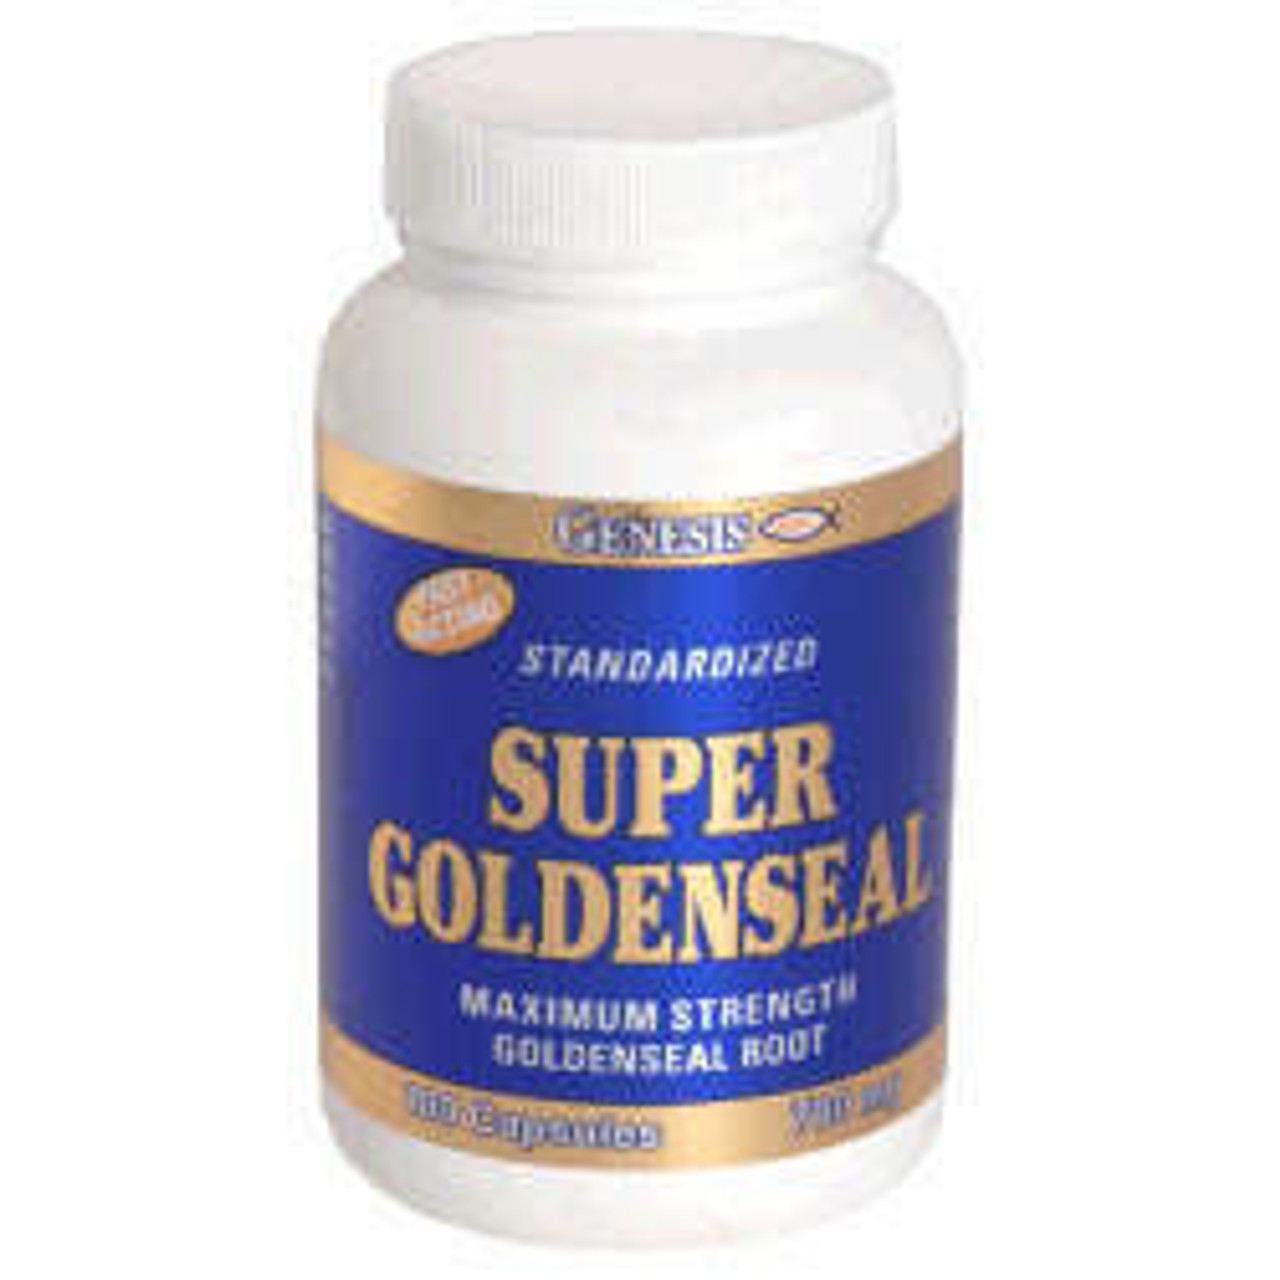 Super Goldenseal 100ct Genesis Nutrition